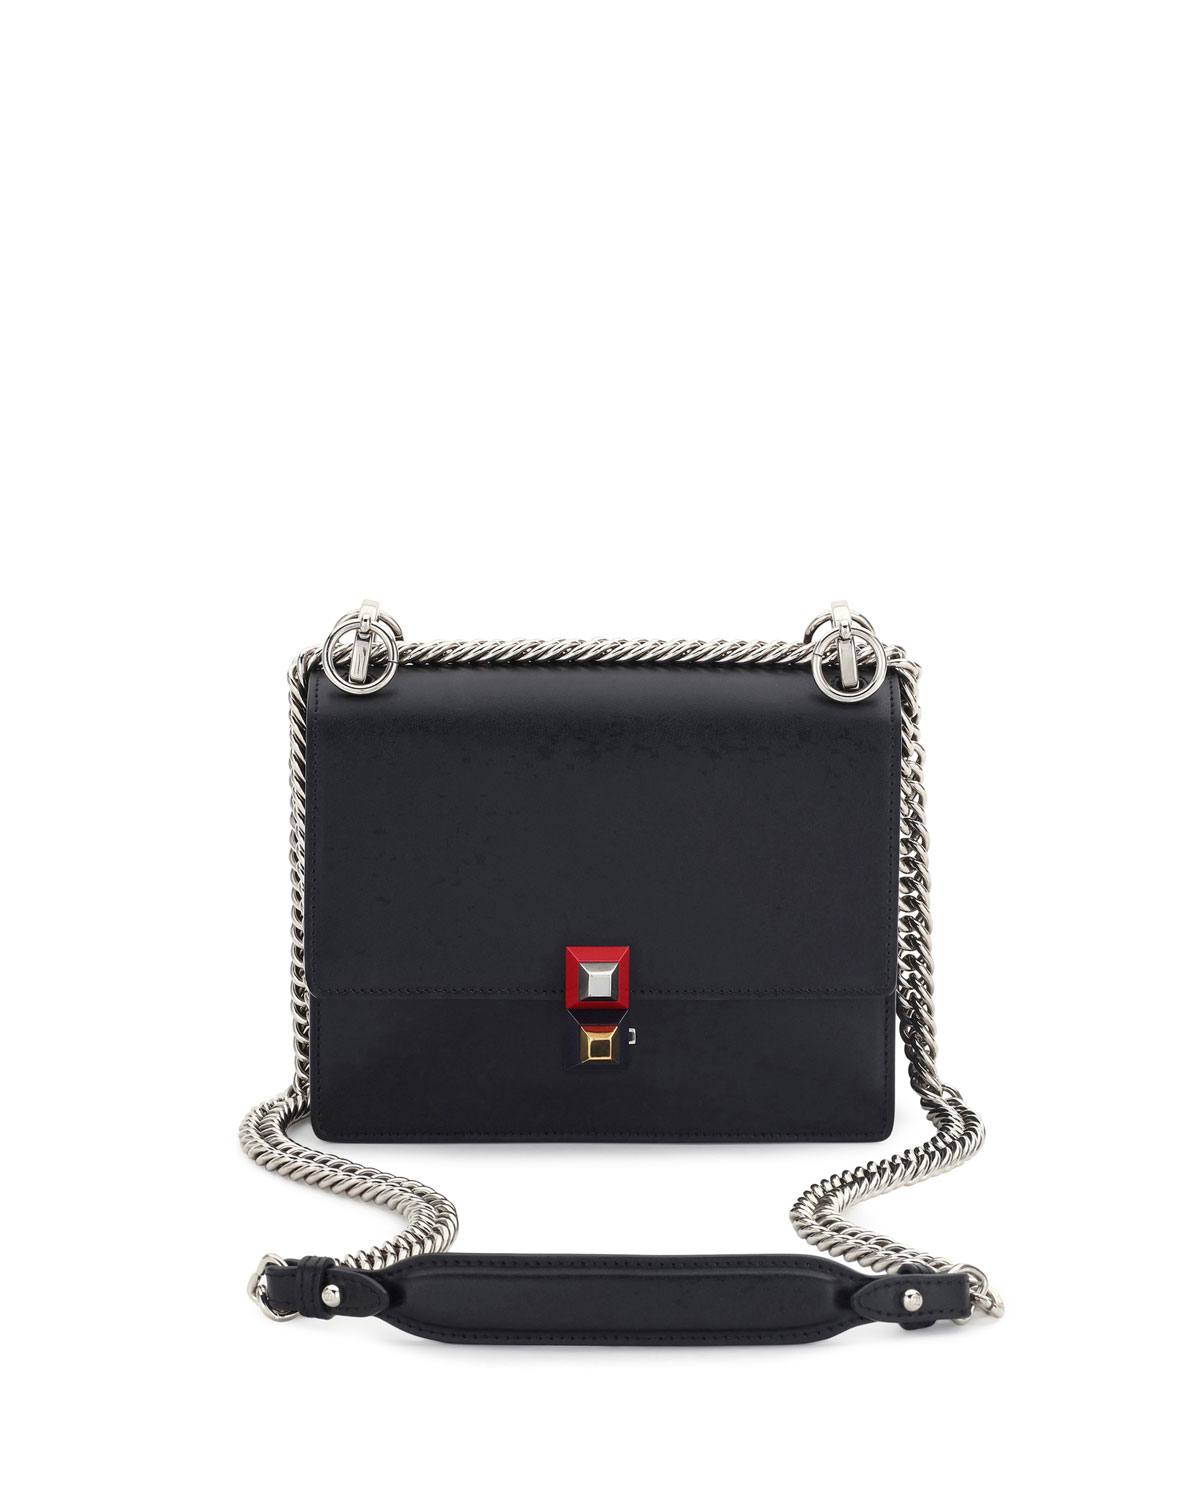 33759d2a4b11 Fendi Kan I Mini Leather Chain Shoulder Bag